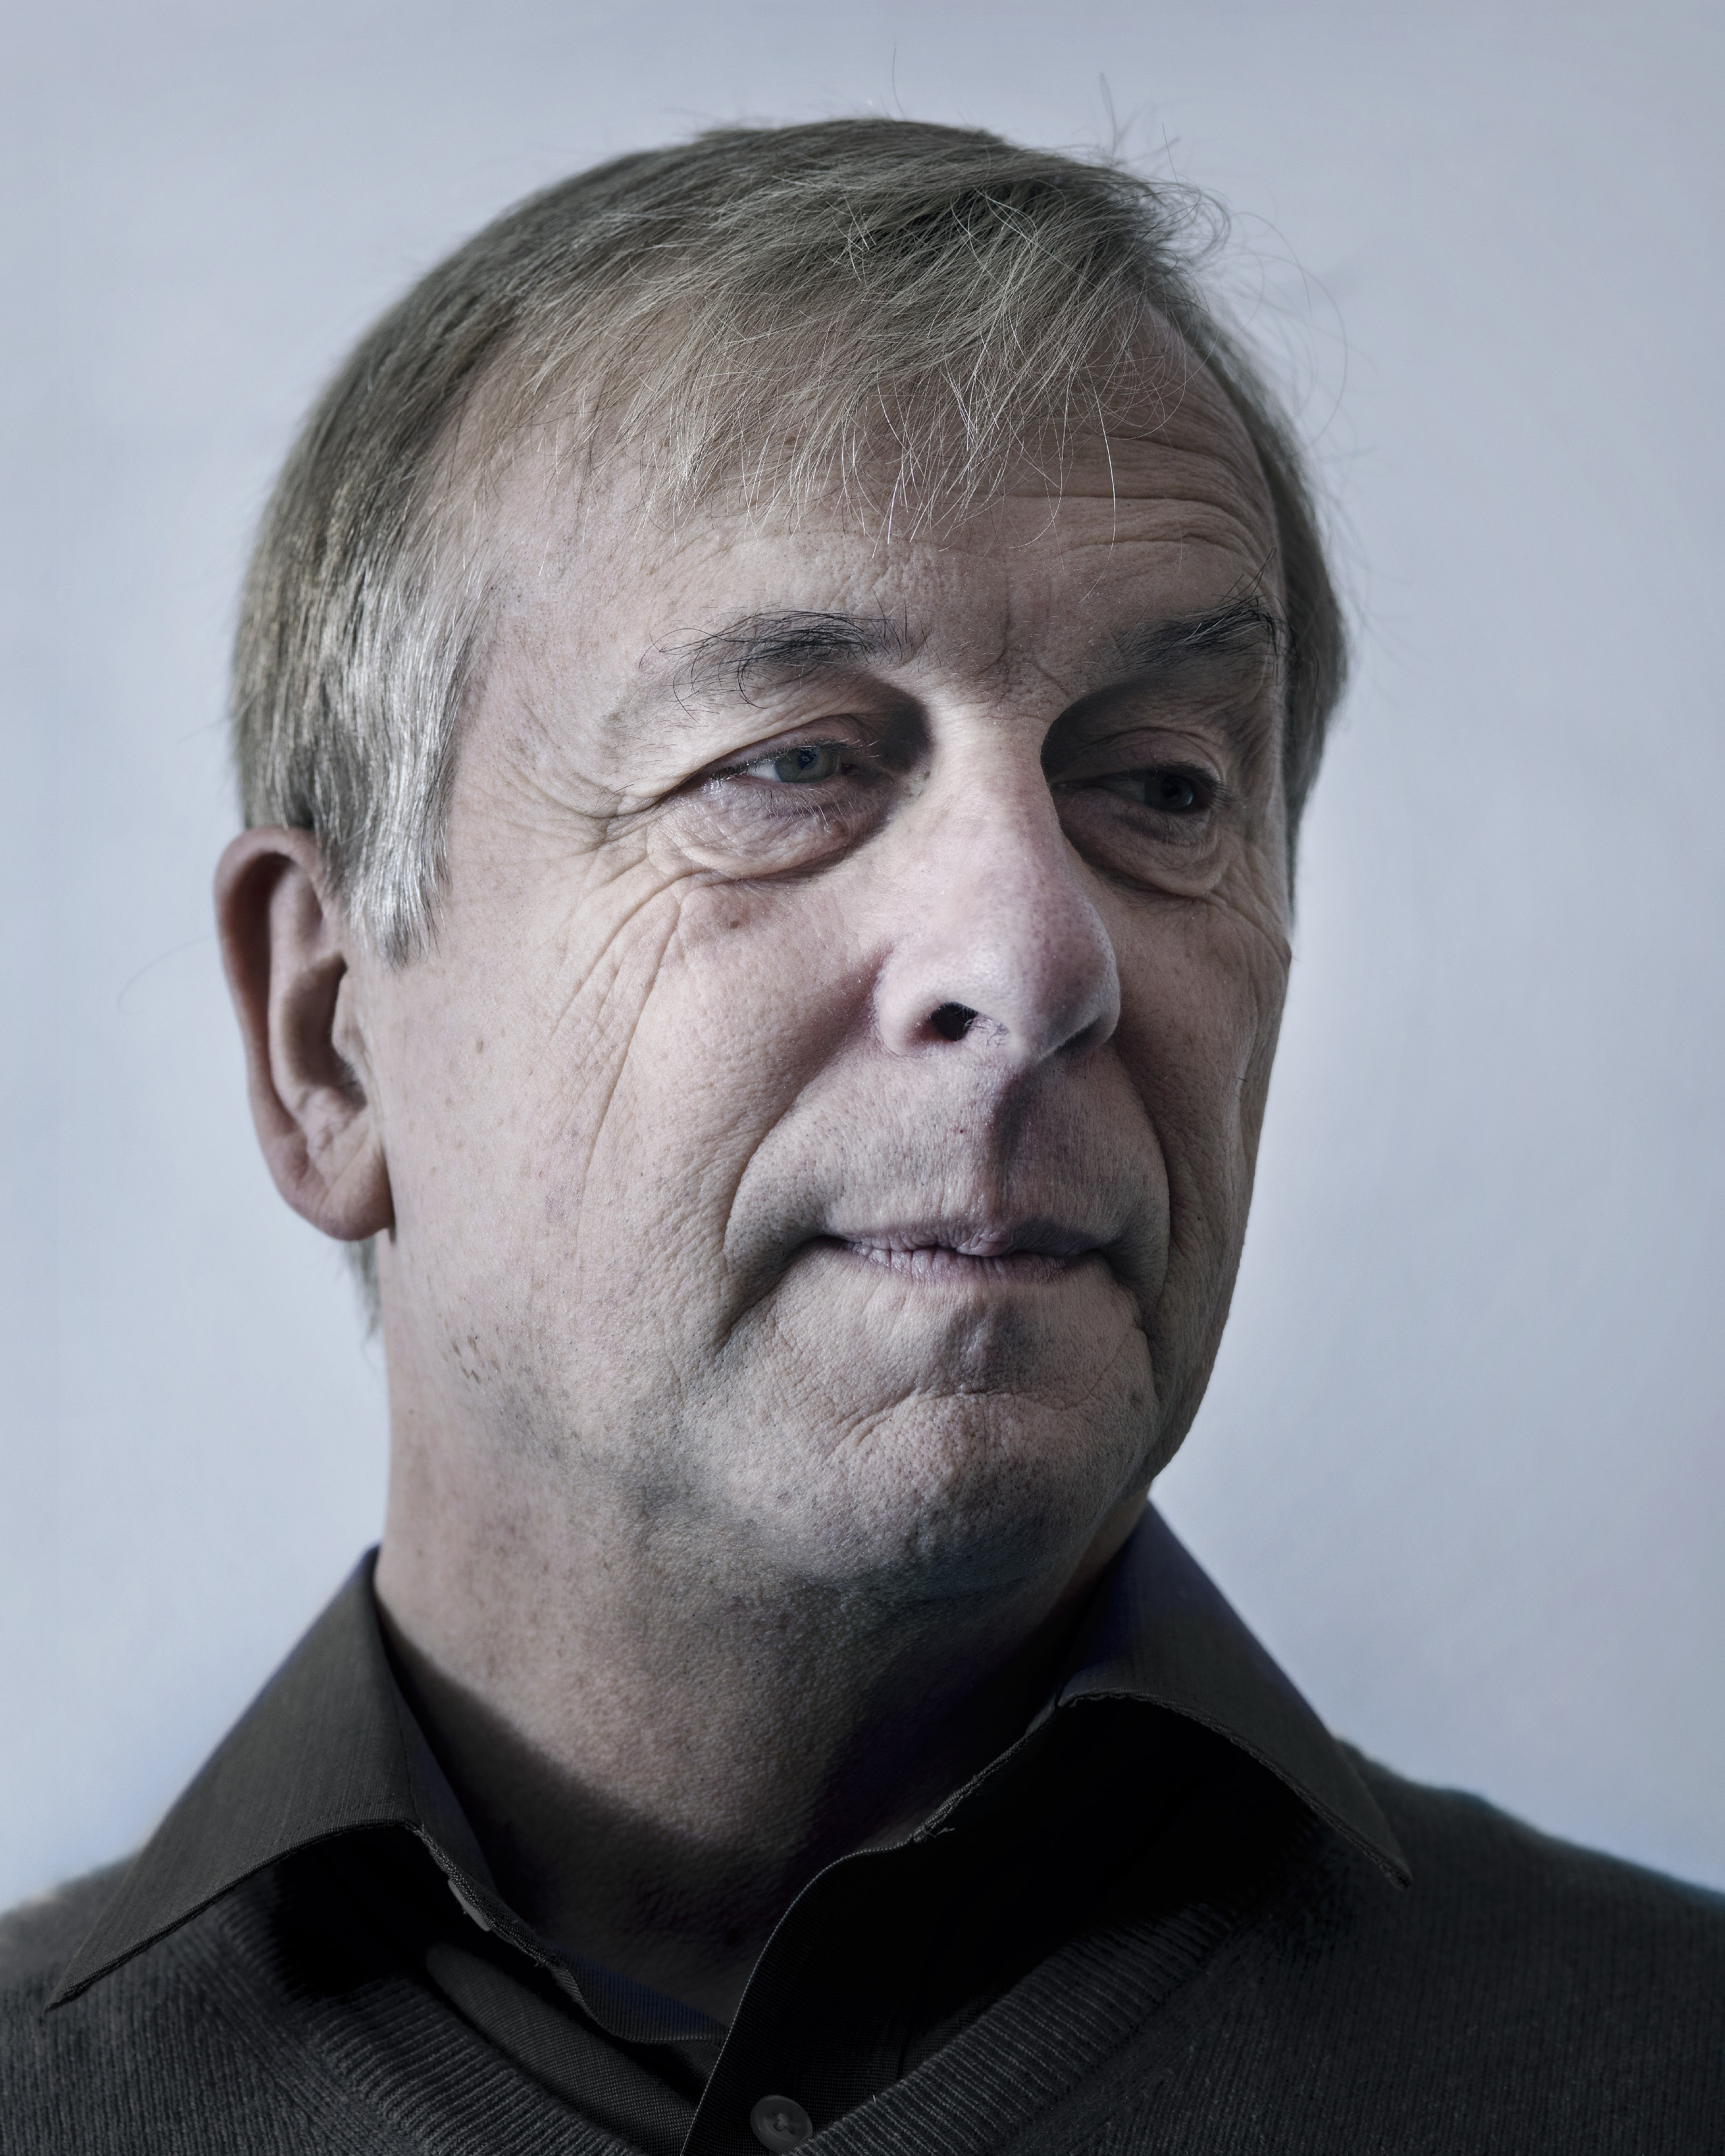 Kevin Warwick, a professor of cybernetics at the University of Coventry, United Kingdom, is known for his studies on direct interfaces between computer systems and the human nervous system, earning him the nickname Captain Cyborg. He has had electrodes directly linked to his nervous system grafted into his arm. Connected to a computer, he has remote-controlled a wheelchair and a computer with no other interface than his implant. A trailblazer in the field of man-machine interaction, he considers himself one of the first cyborgs. The British scientist almost systematically appears in the media and general-public articles about transhumanism. His position is unique, for he straddles two areas that in theory are disconnected: institutional scientific research and biohacking.  Prague, January 6, 2017